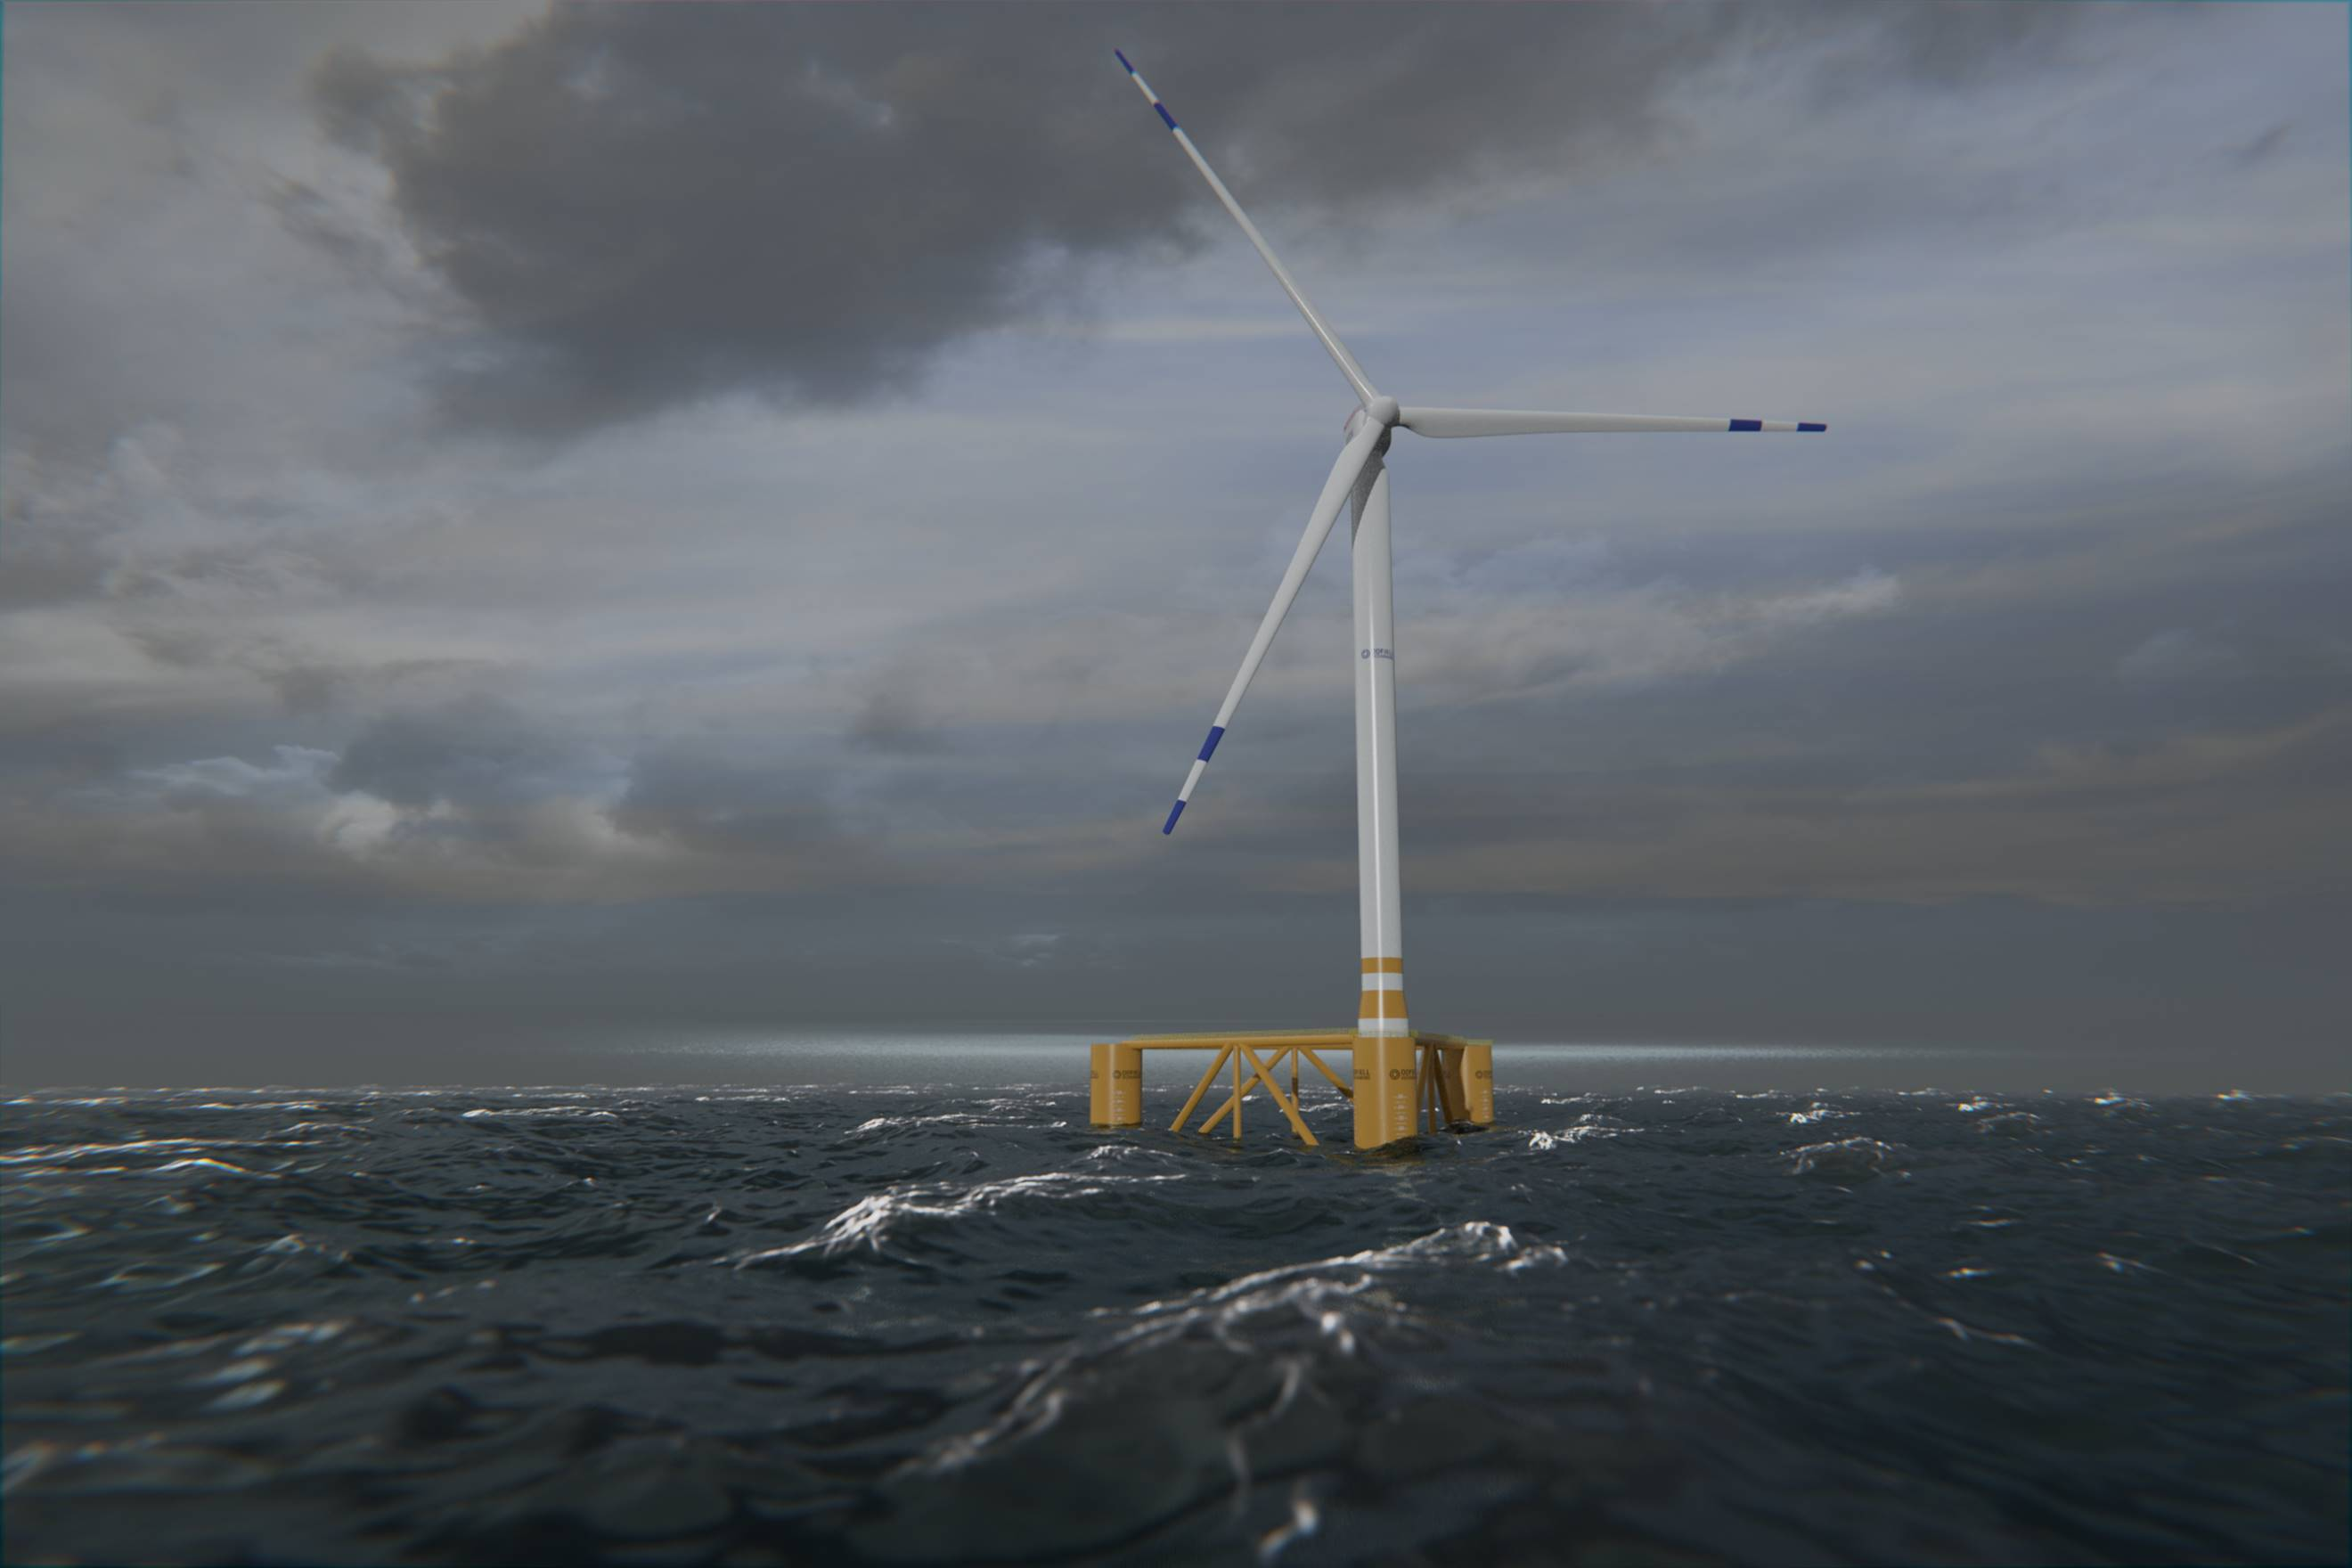 Debunking some myths about offshore wind's role in the energy transition